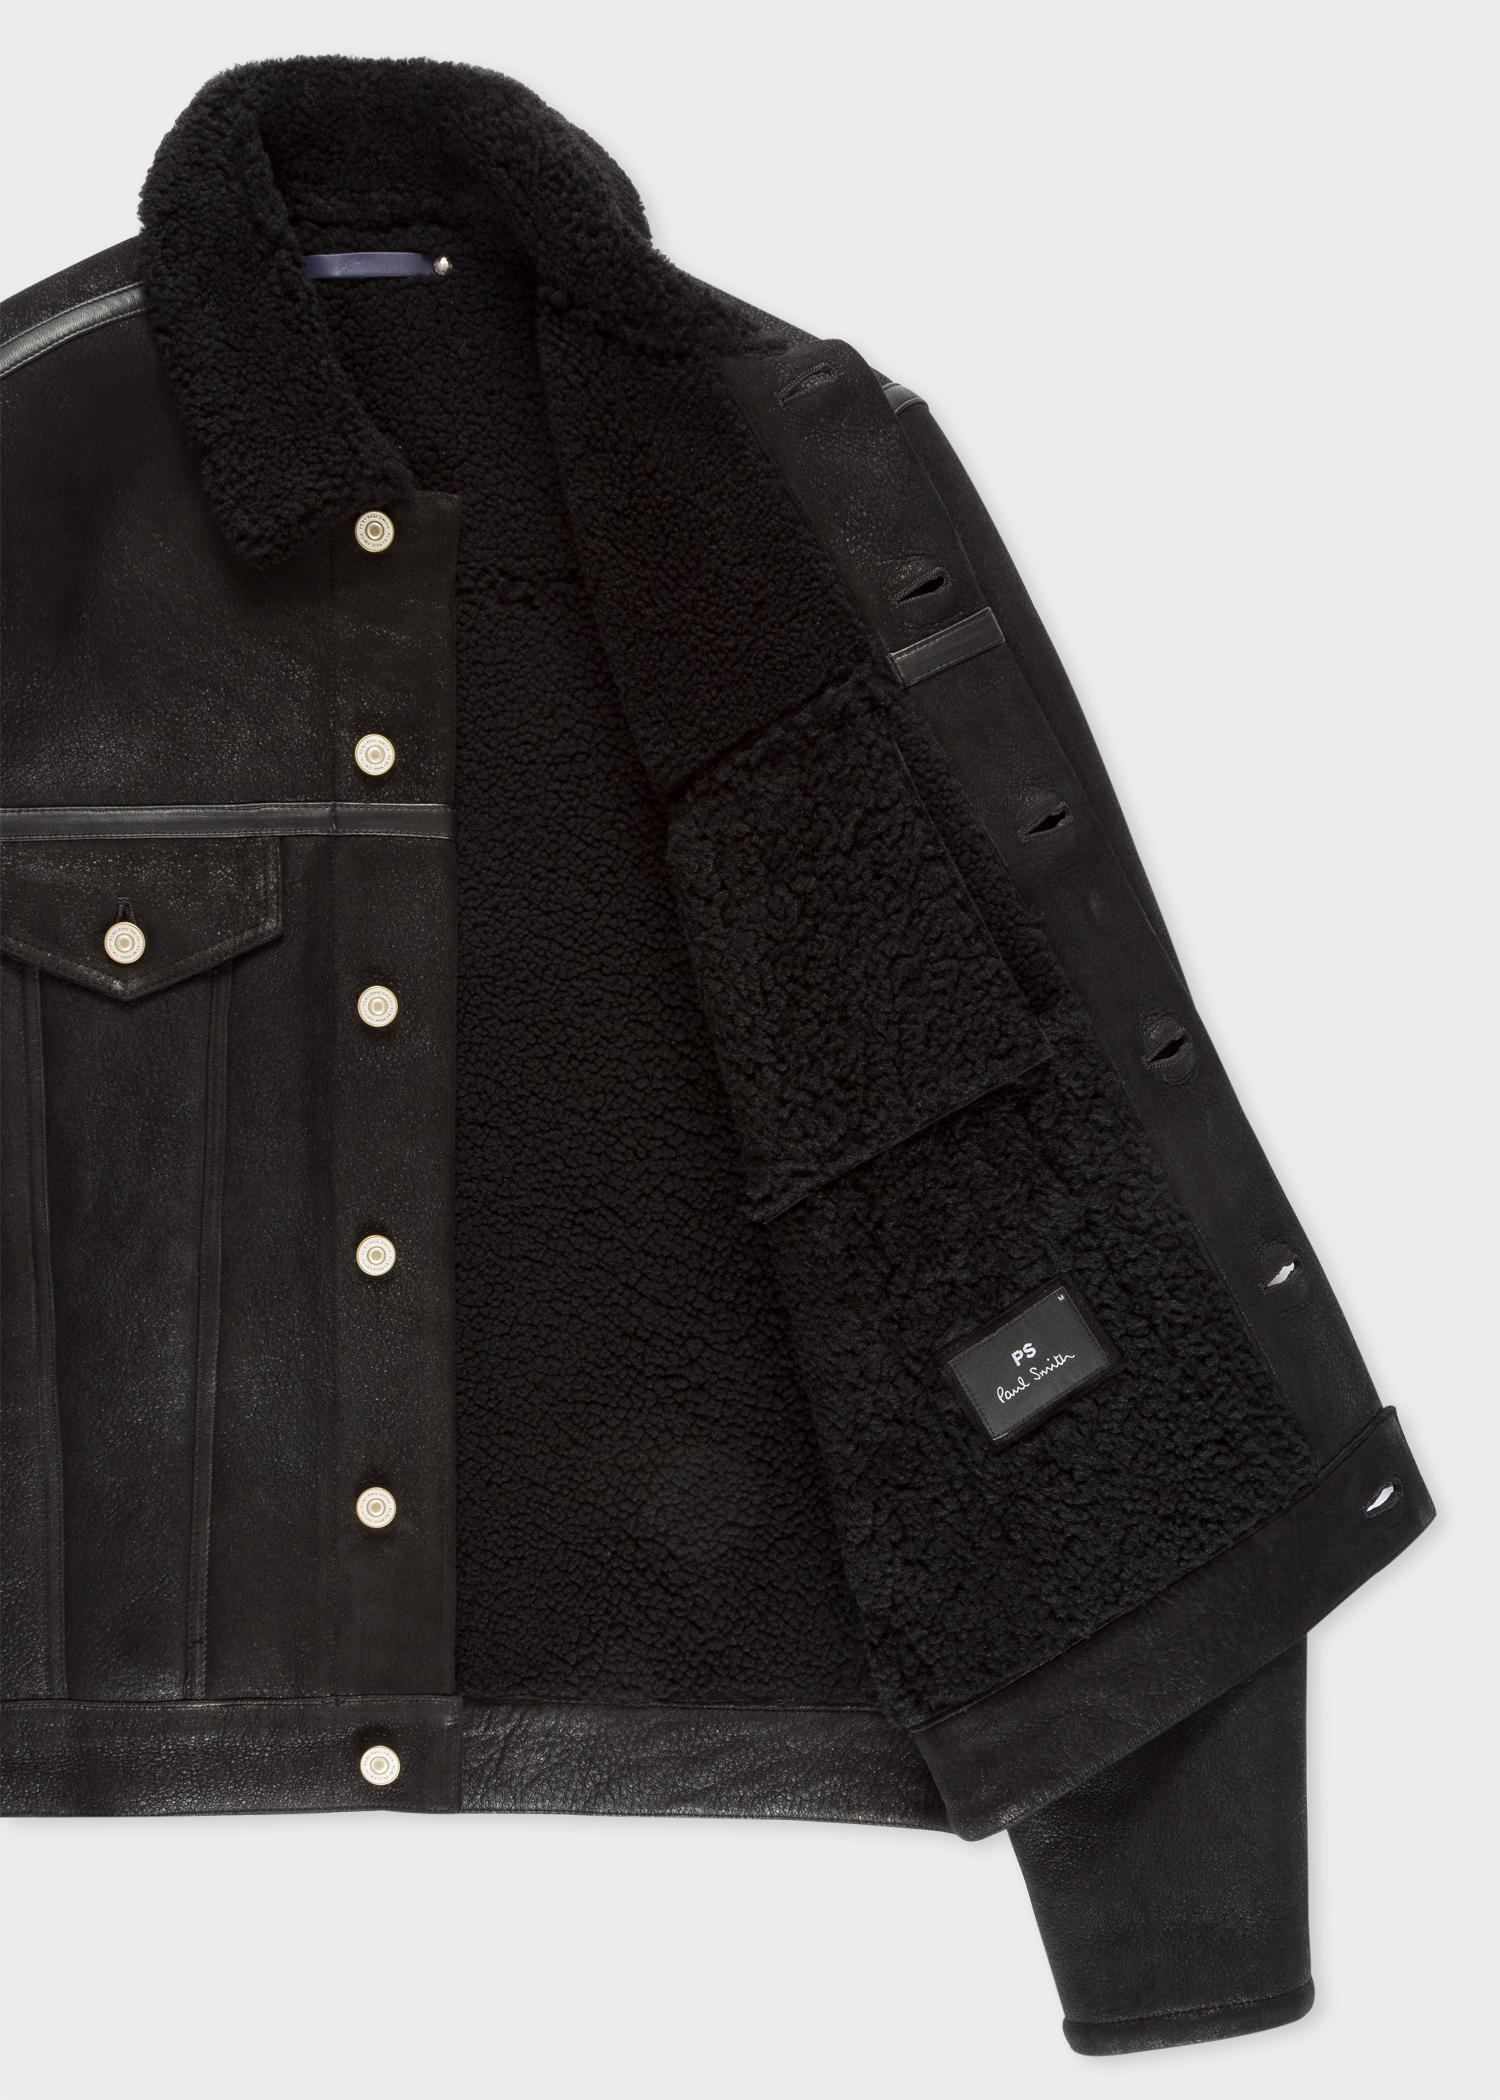 Paul Smith Leather Black Shearling Jacket for Men